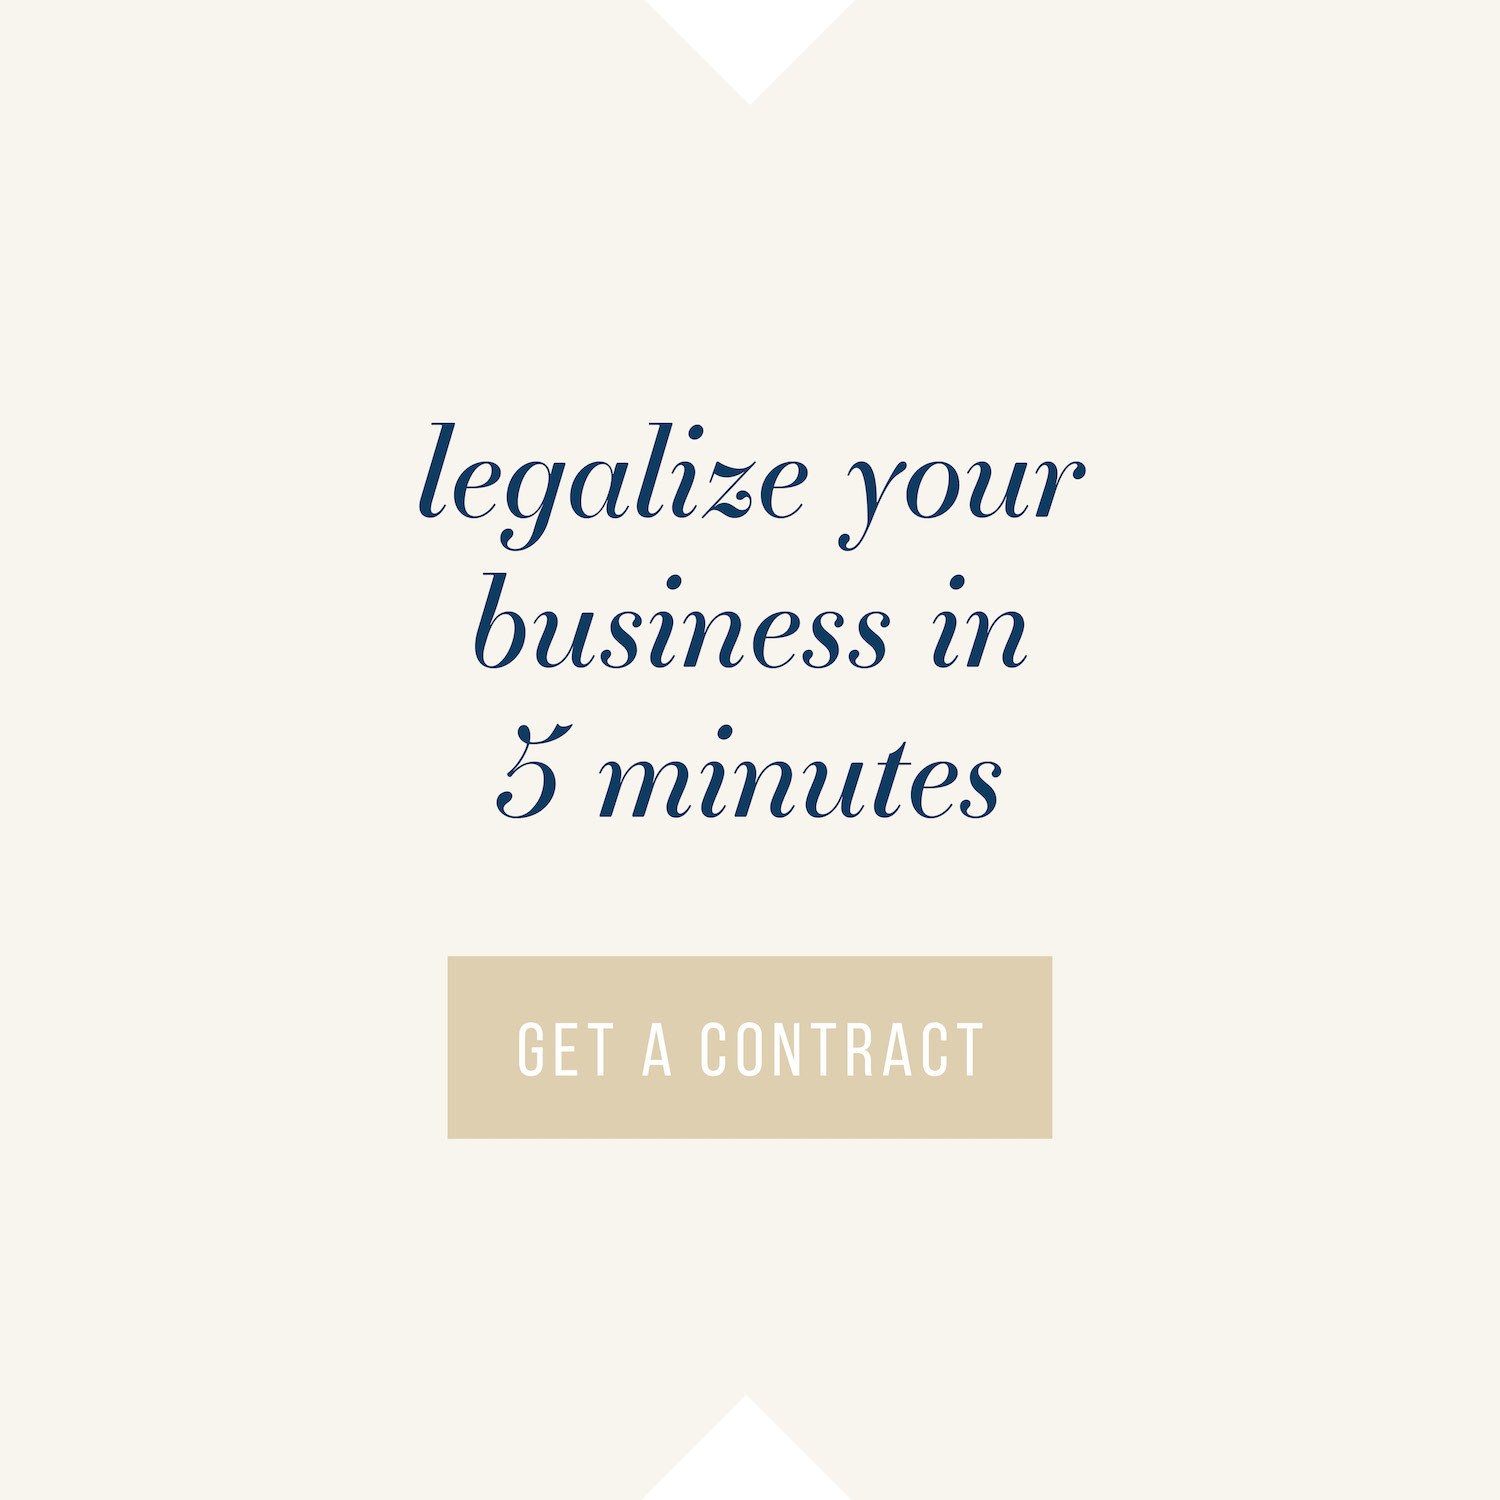 LEGAL TEMPLATESIn less than 10 minutes, an attorney-prepared and peer-reviewed agreement can be in your hands. Does your website have a Terms and Conditions page? Use a pre-written template form The Contract Shop to keep your website legal. - PS: This link is an affiliate link, so I'll receive a small commission from any purchases using my link.